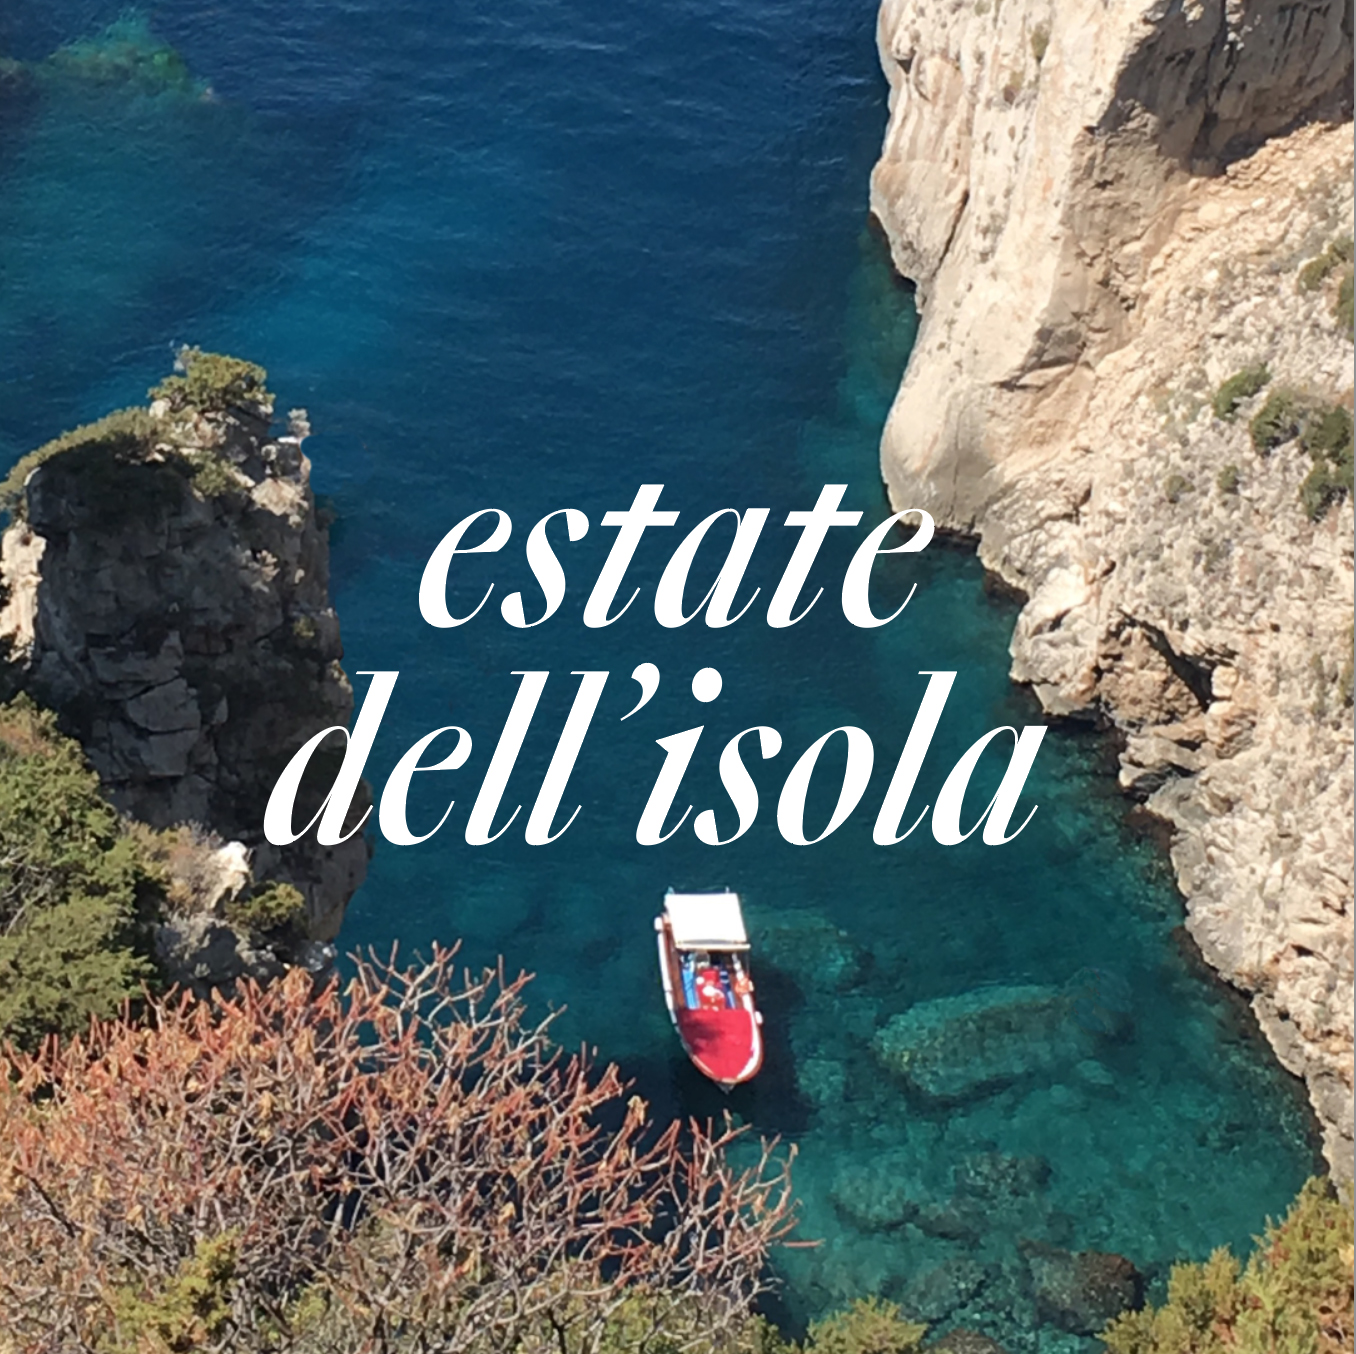 Nicole Polletta Studio Soundtrack Spotify Playlist Music estate dell'isola